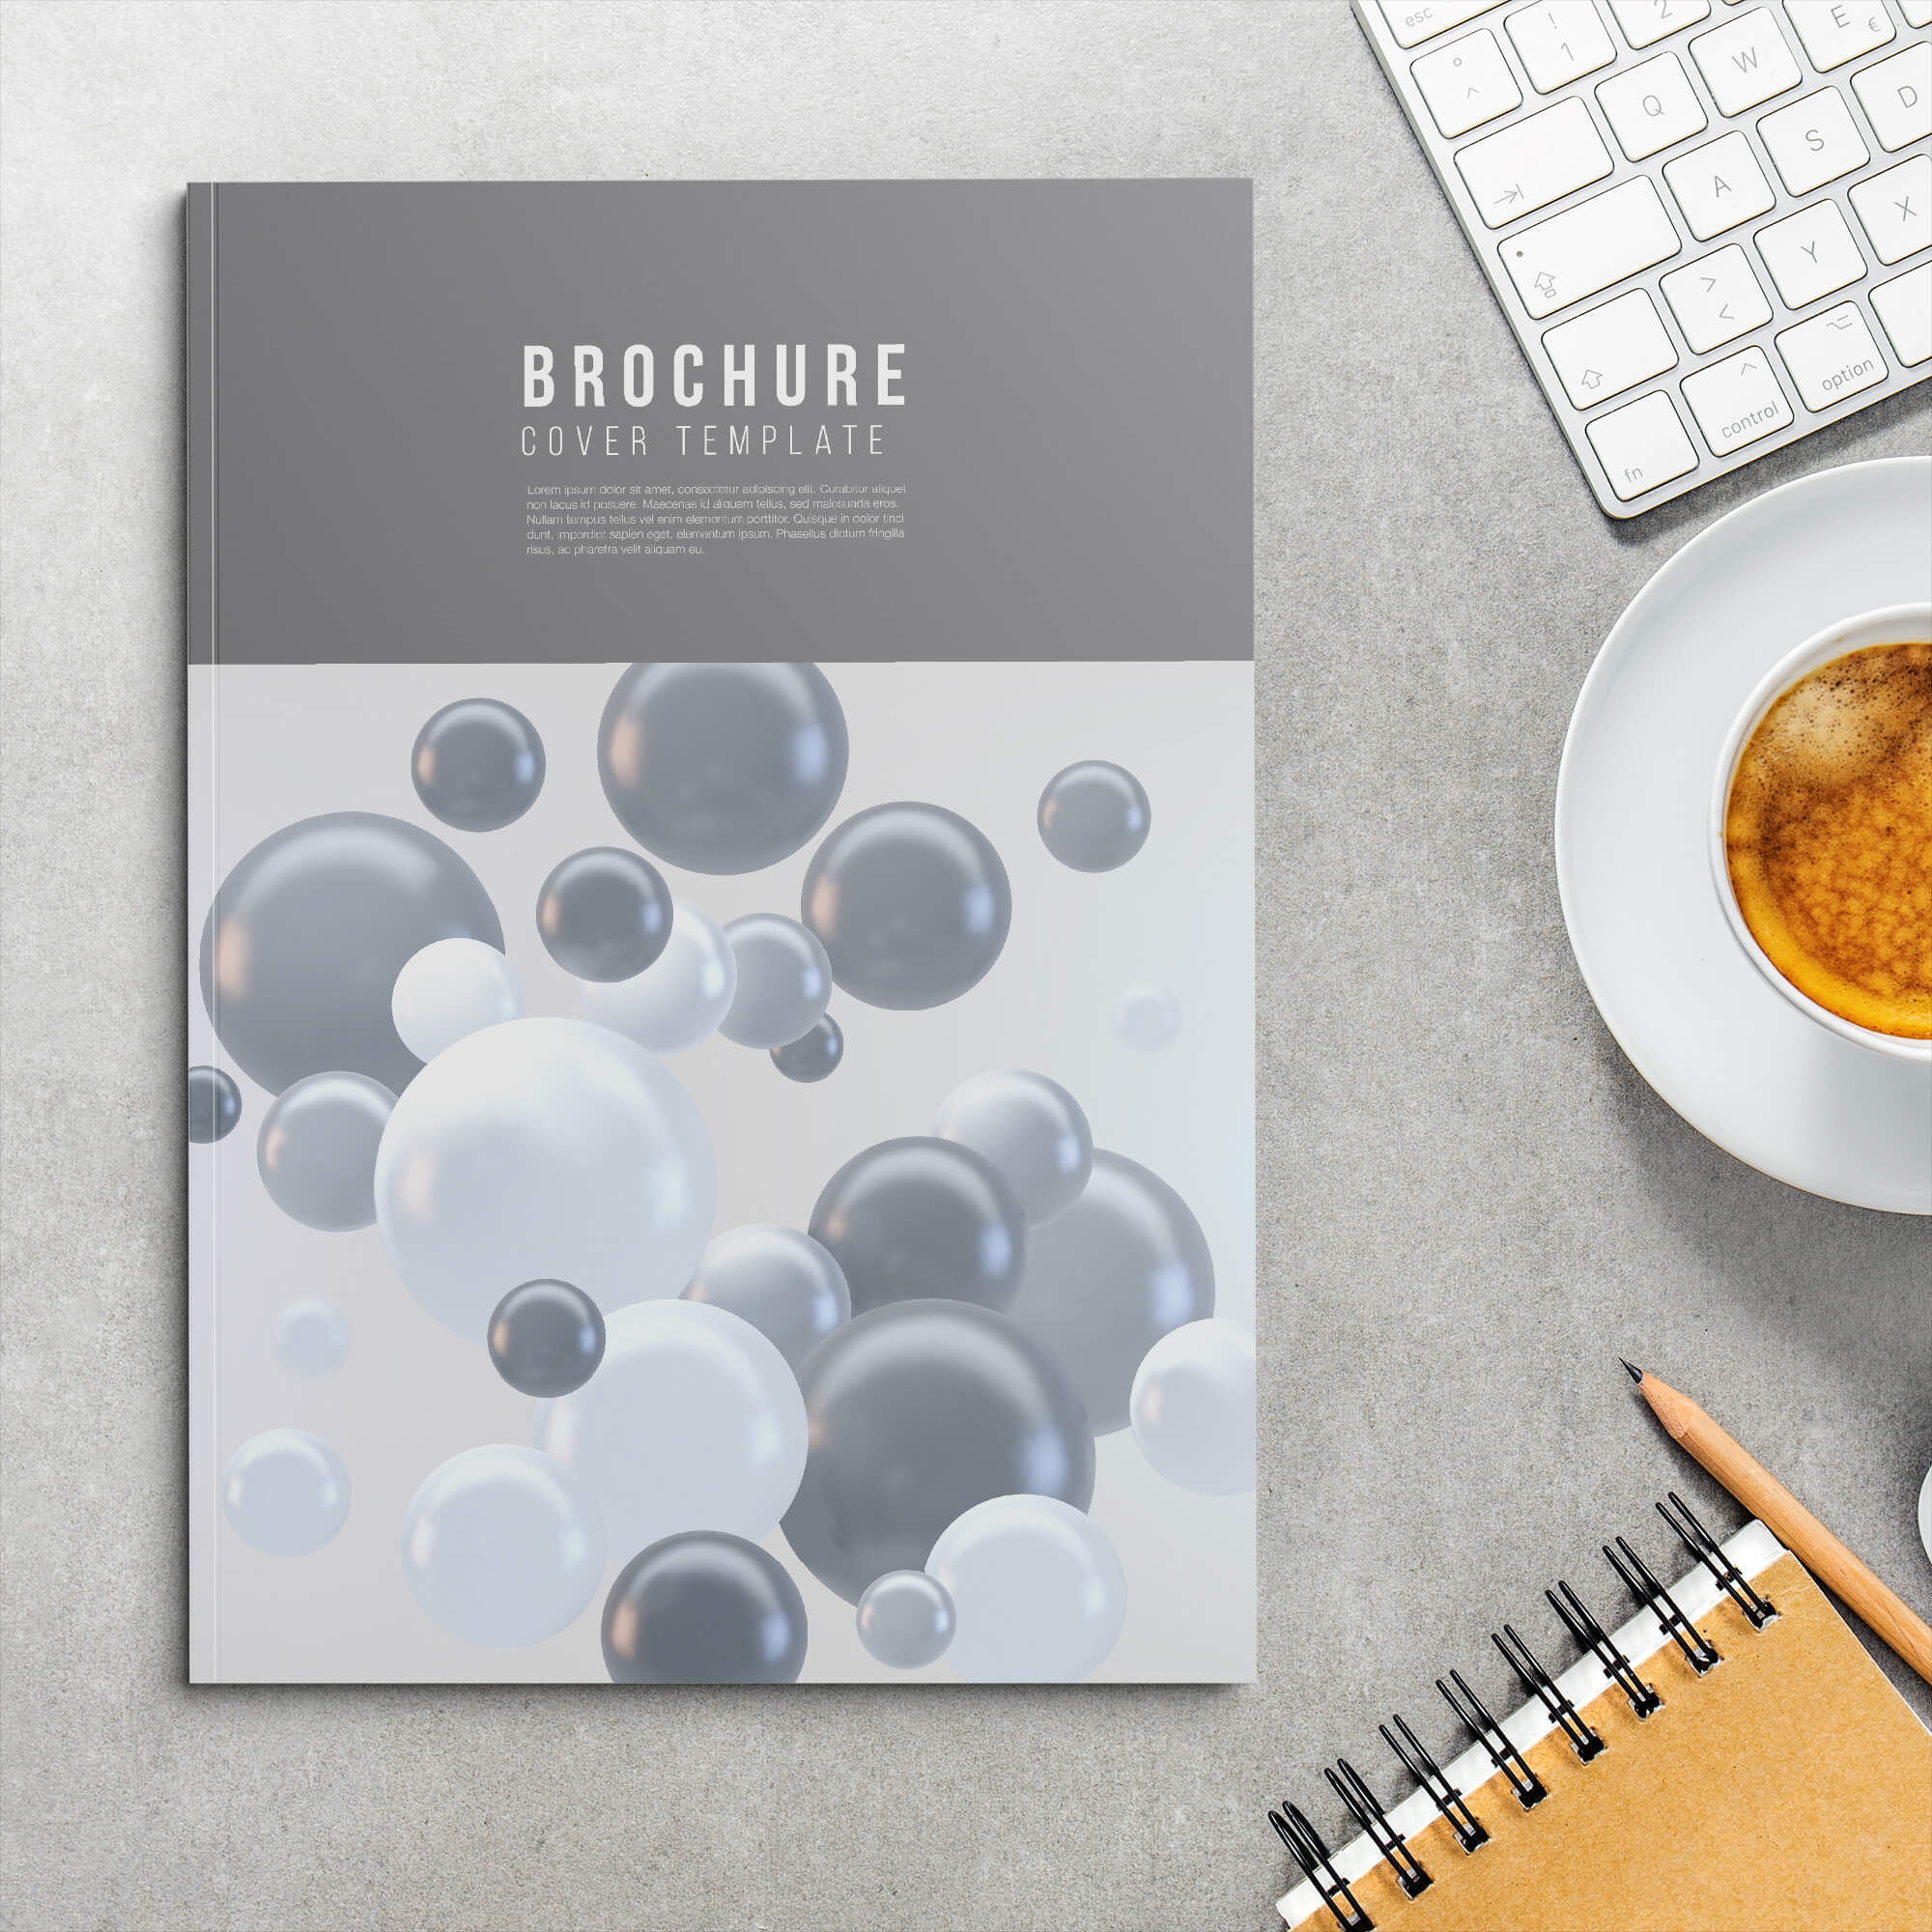 Free Soft Cover Mockup PSD Template